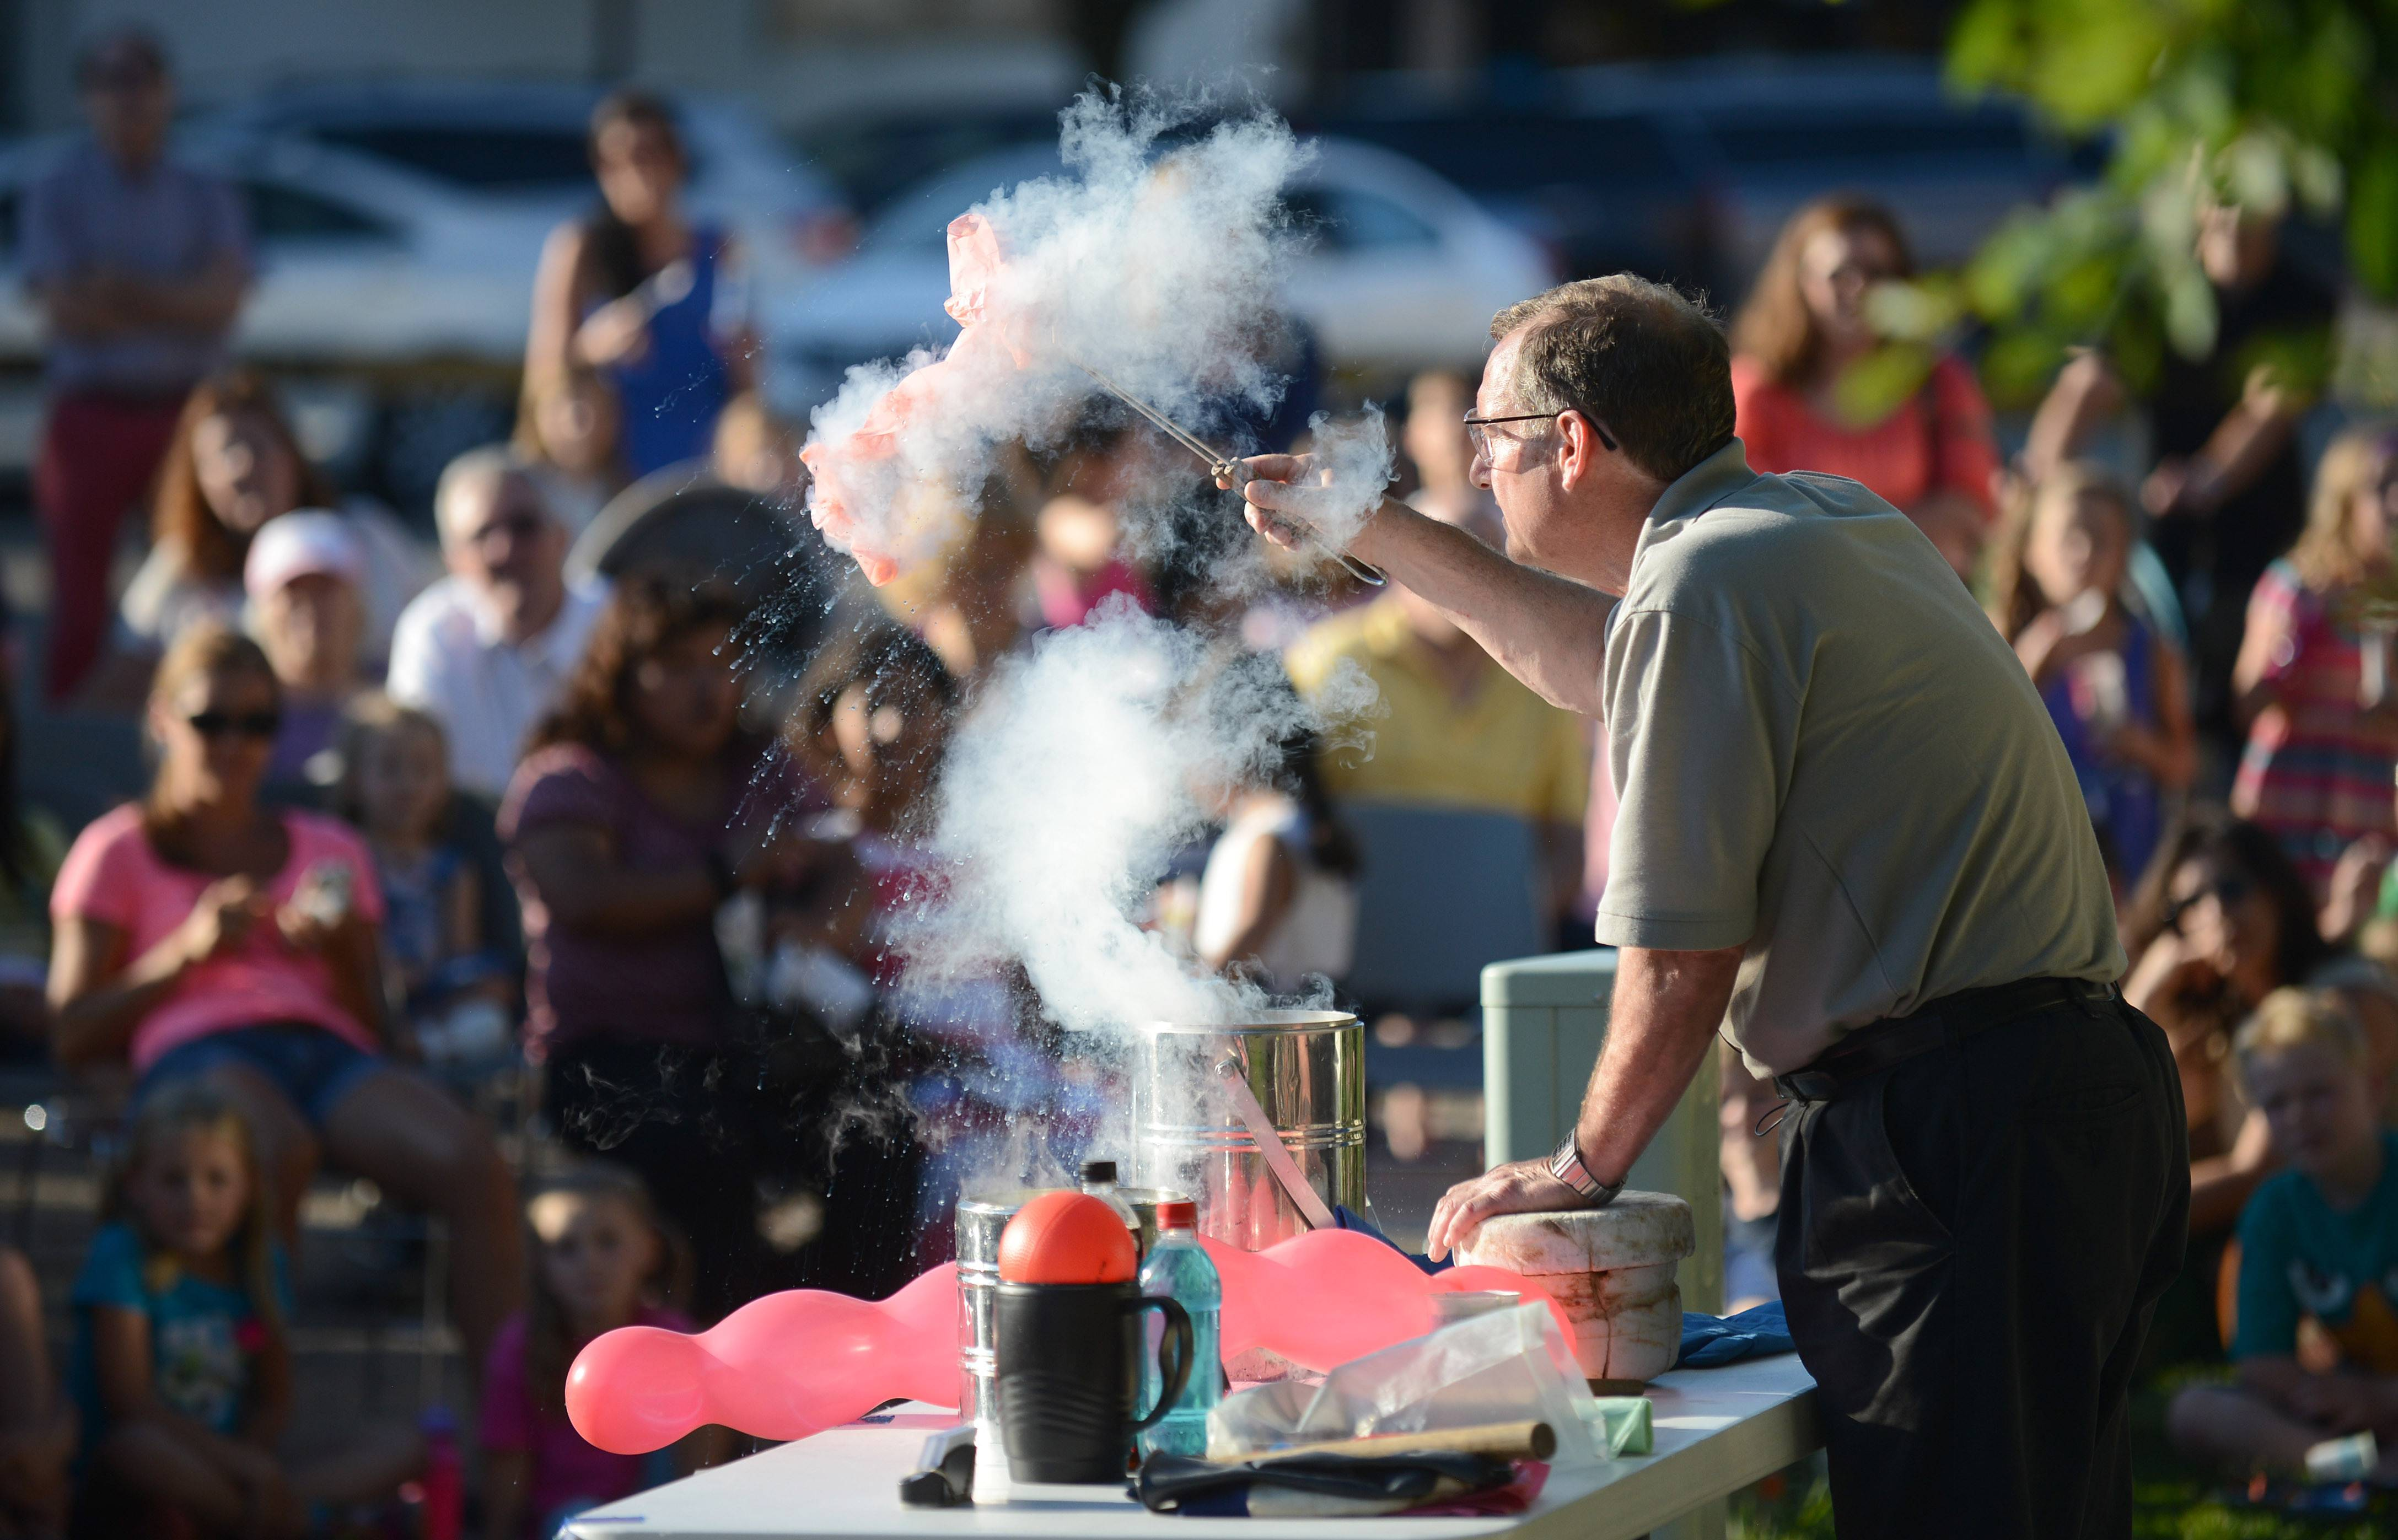 Jerry Zimmerman of Fermilab in Batavia, aka Mr. Freeze, removes balloons from liquid nitrogen during a presentation on cryogenics at Geneva Public Library's annual ice cream social on Wednesday. The balloons reinflated to full size as they warmed up. Spectators enjoyed free Dippin' Dots ice cream during the demonstration, a treat made by cryogenics.